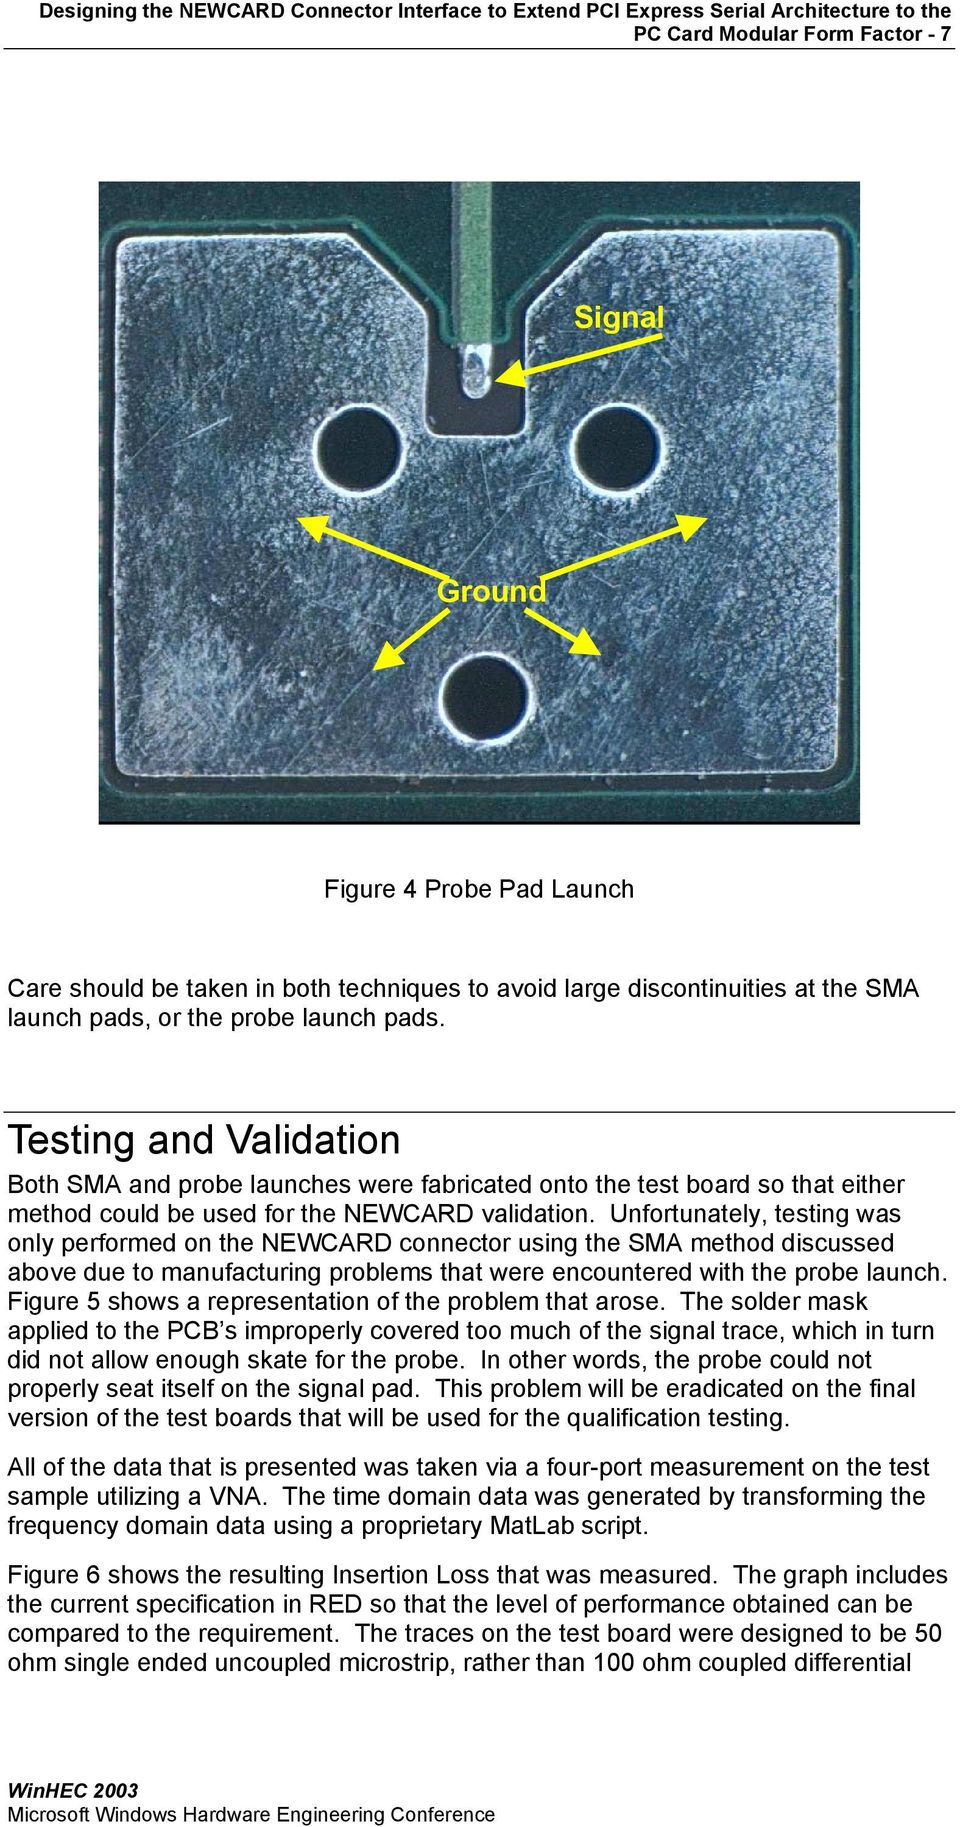 Unfortunately, testing was only performed on the NEWCARD connector using the SMA method discussed above due to manufacturing problems that were encountered with the probe launch.